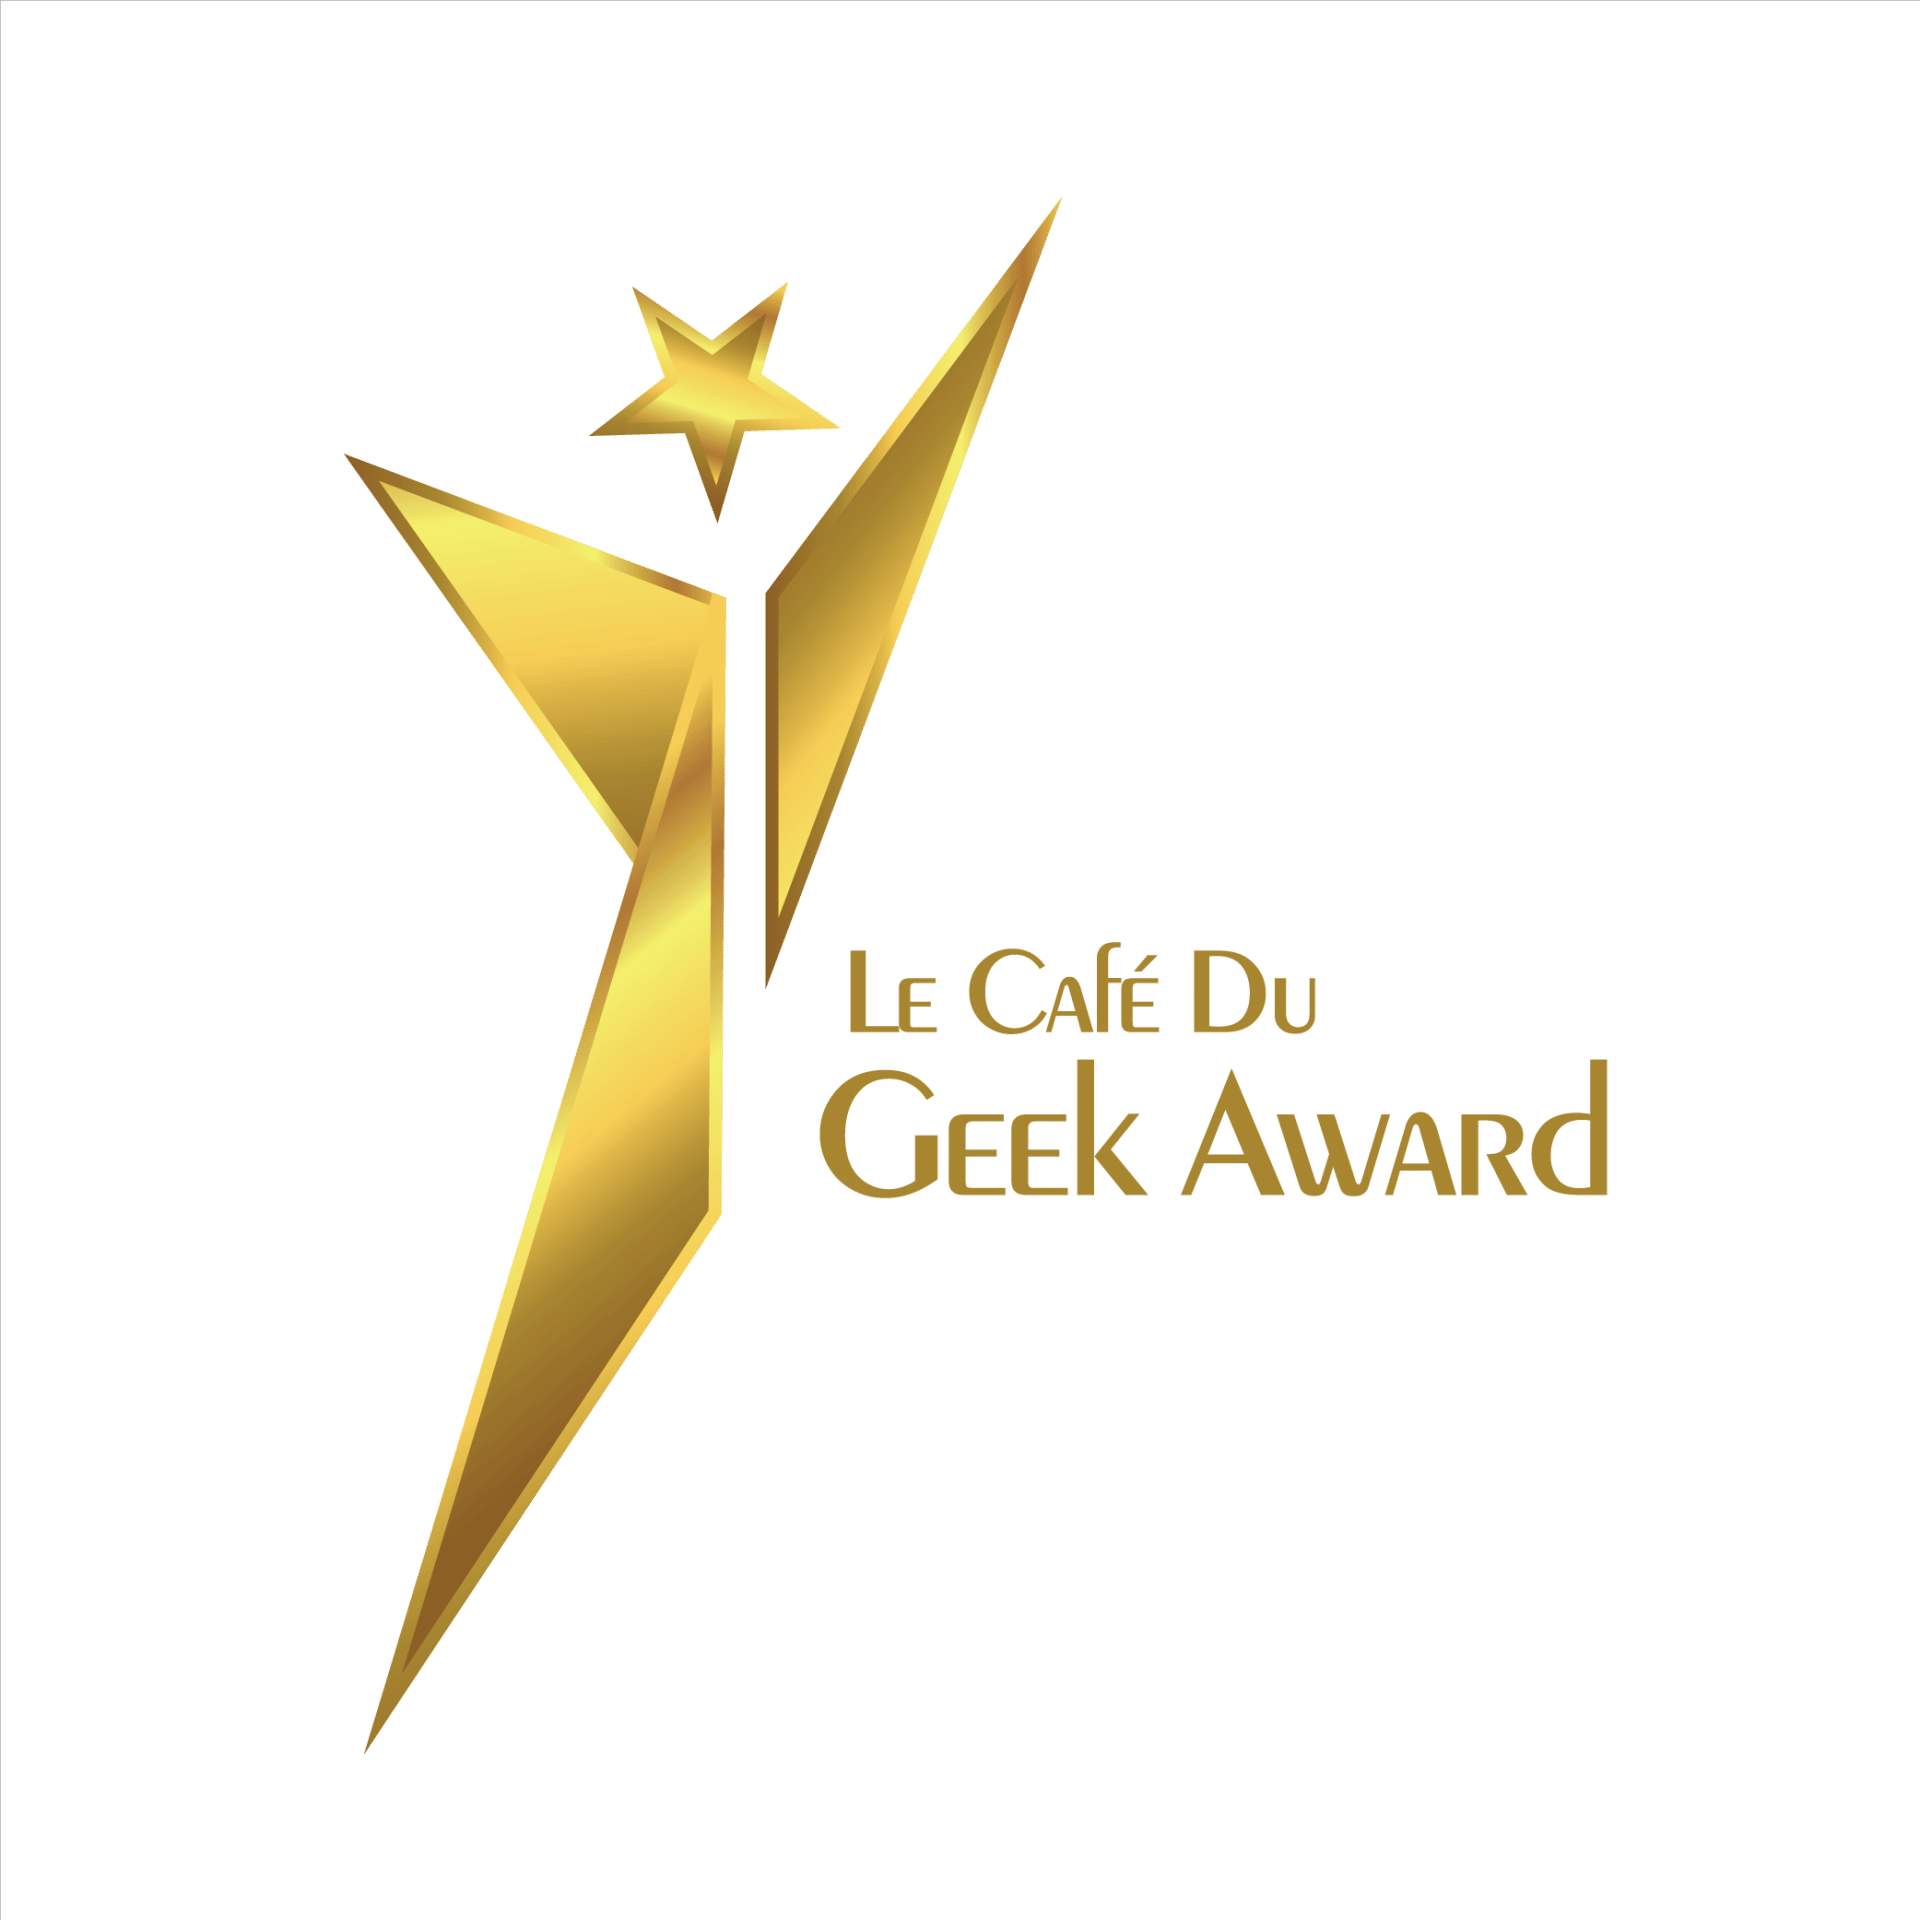 Award transparent